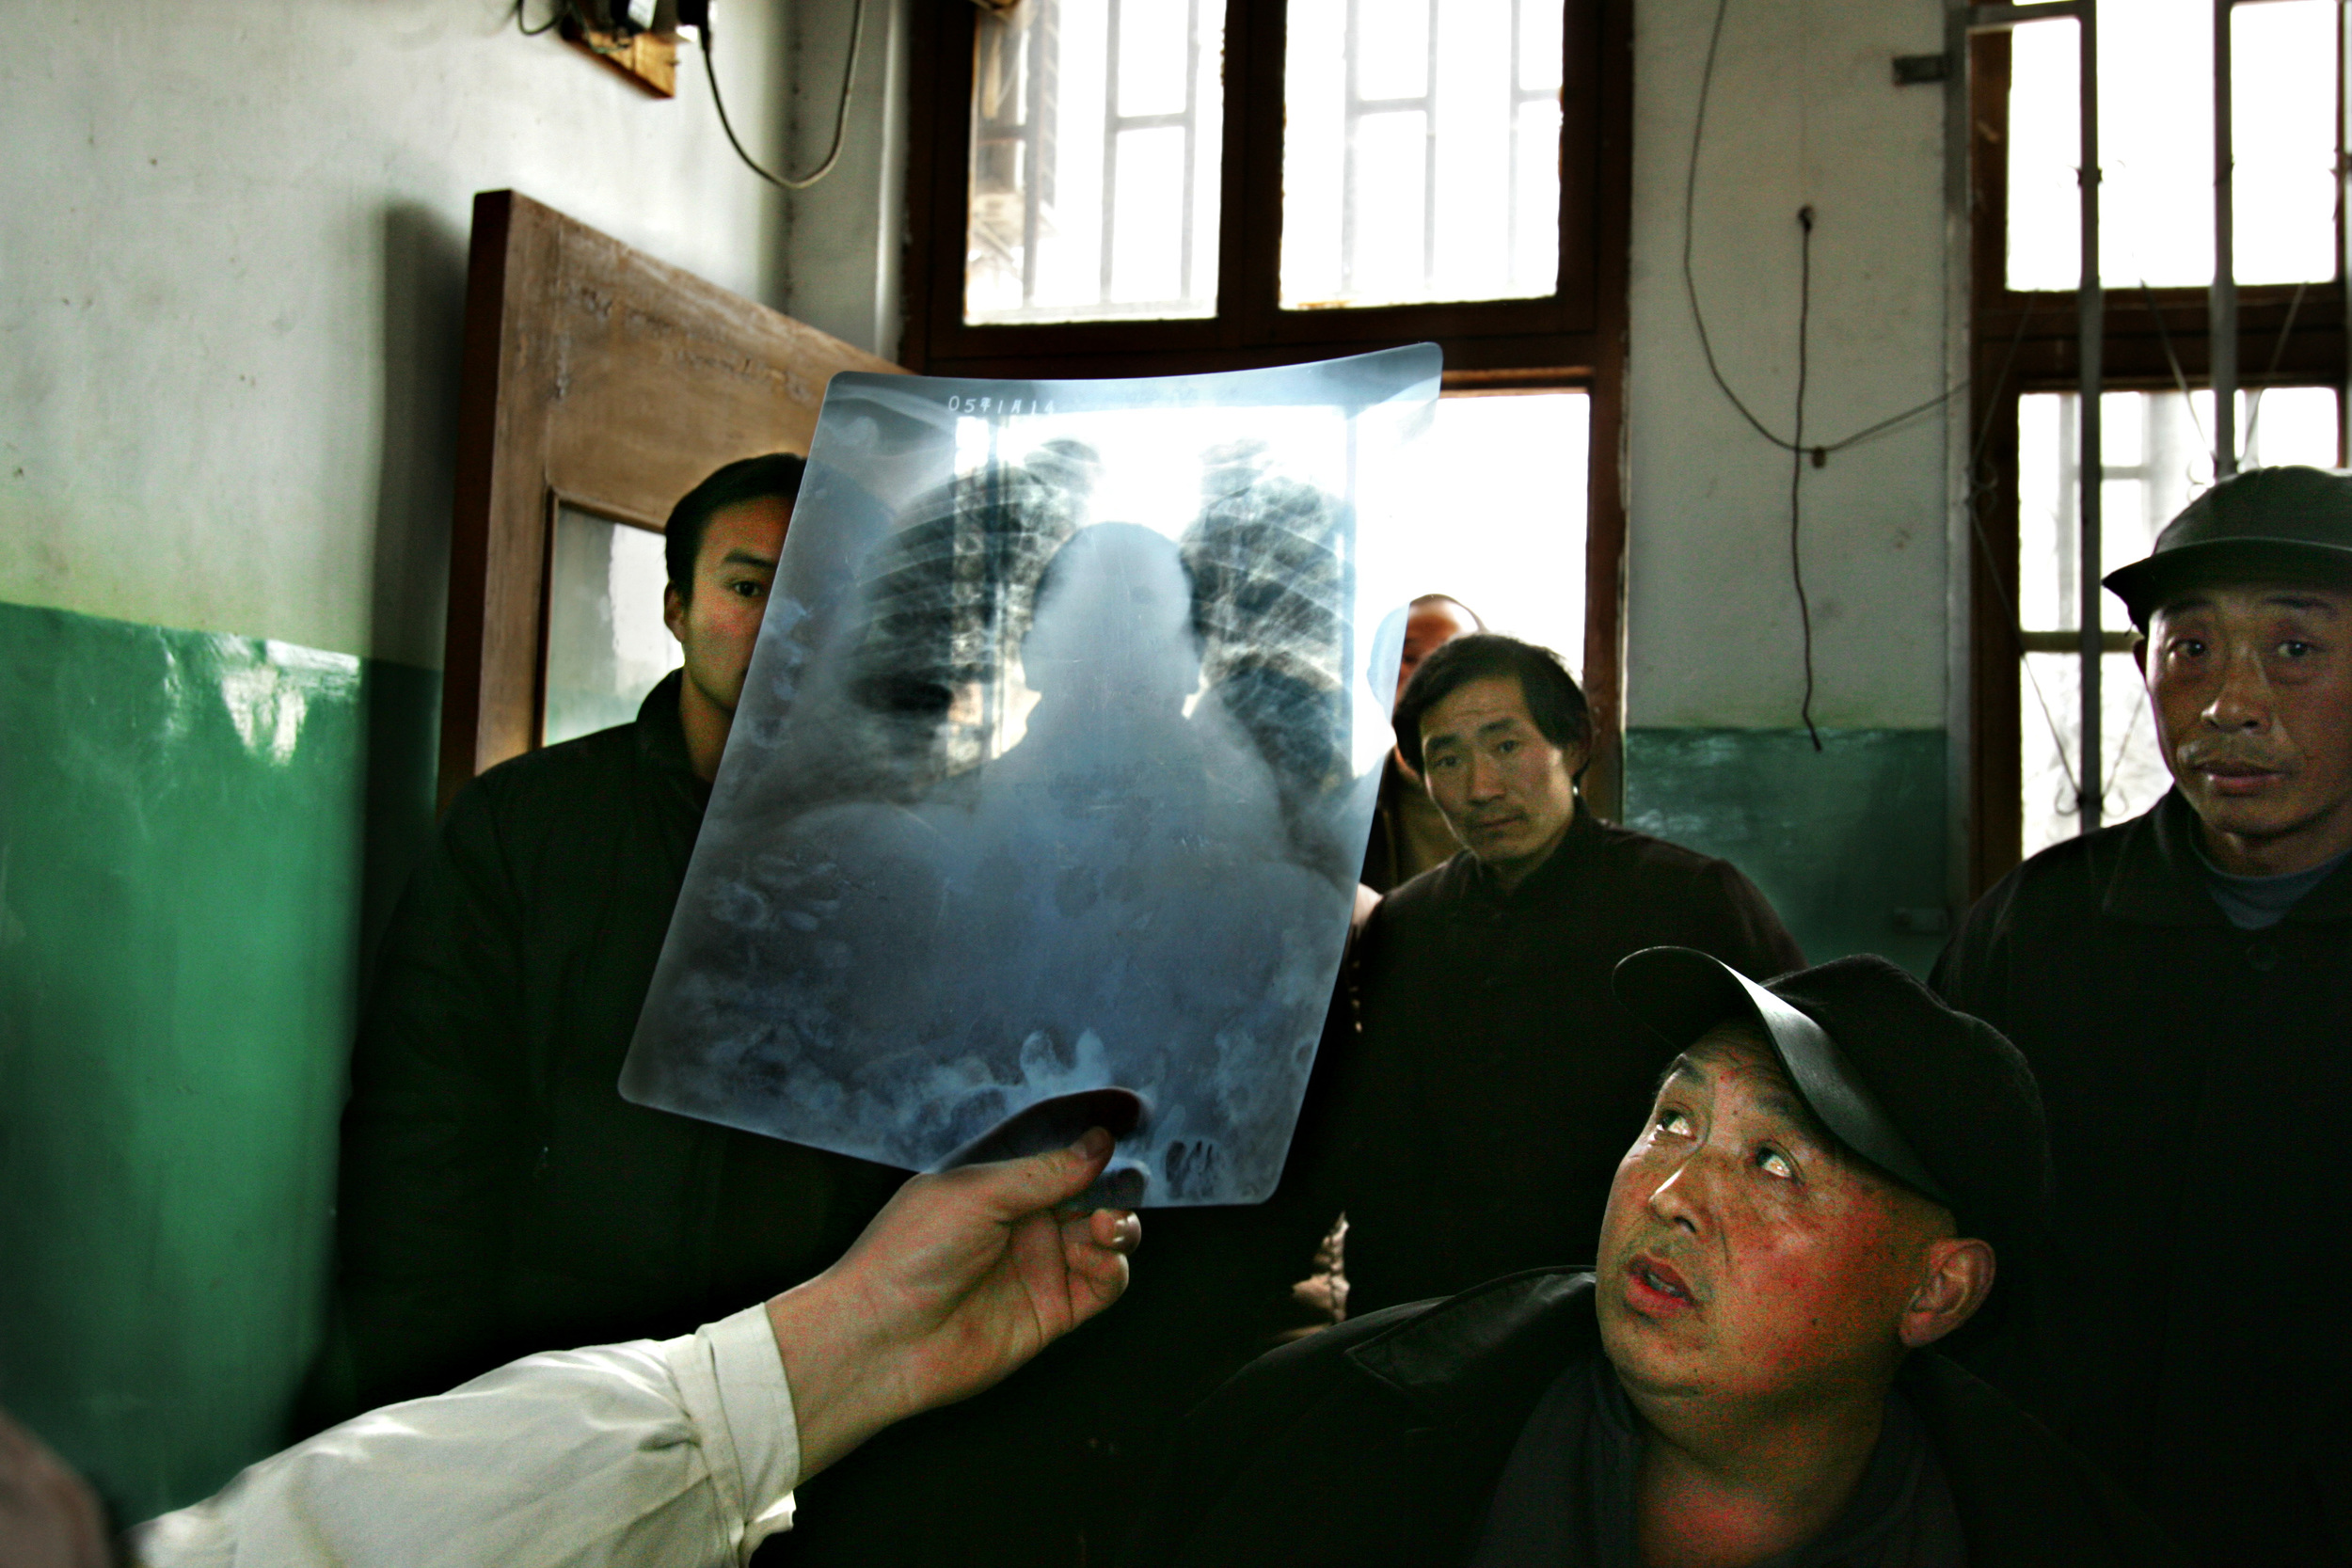 Liu Tianheng looks at his X-ray at the Shenqiu County Hospital. Liu has stomach cancer and brought his X-ray along with his medical records to meet with the head of the cancer unit at the hospital, Dr. Wang Yong Zeng.